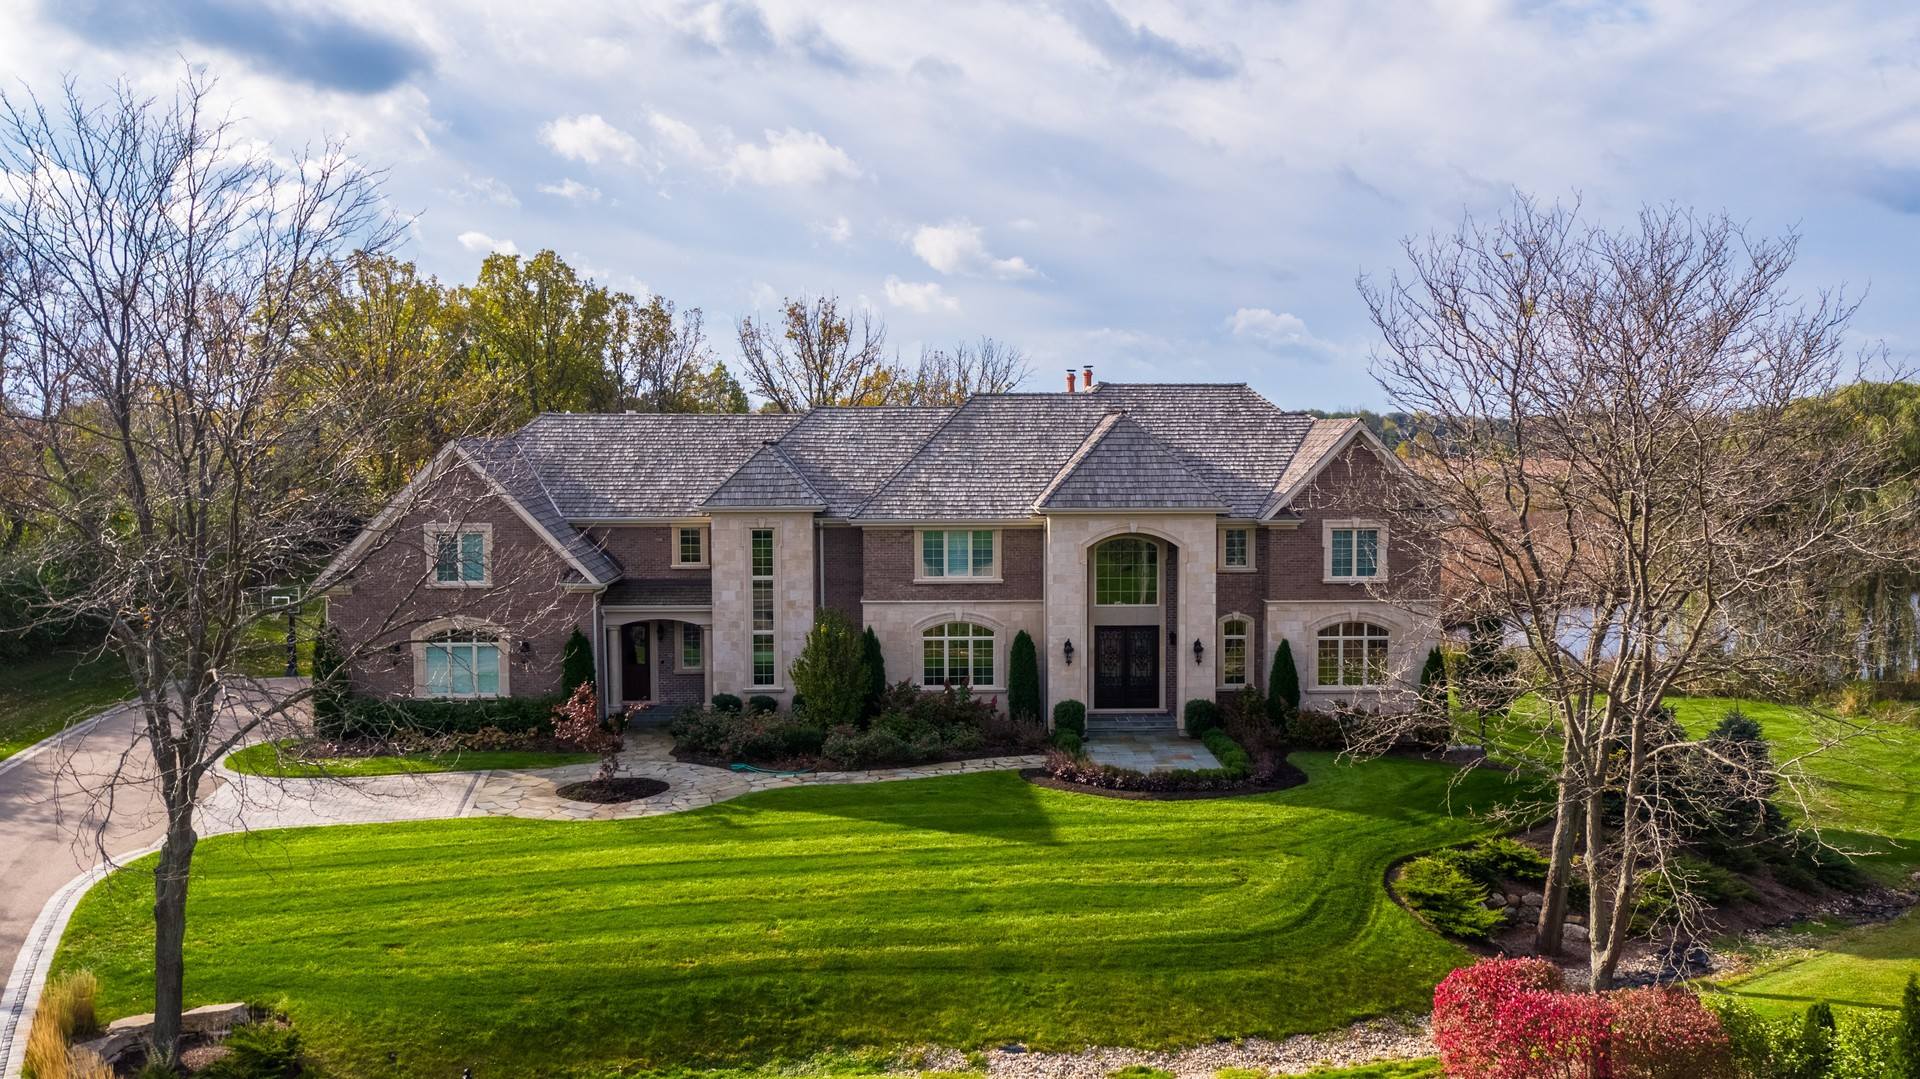 400 Waterford Lane, Inverness, IL 60010